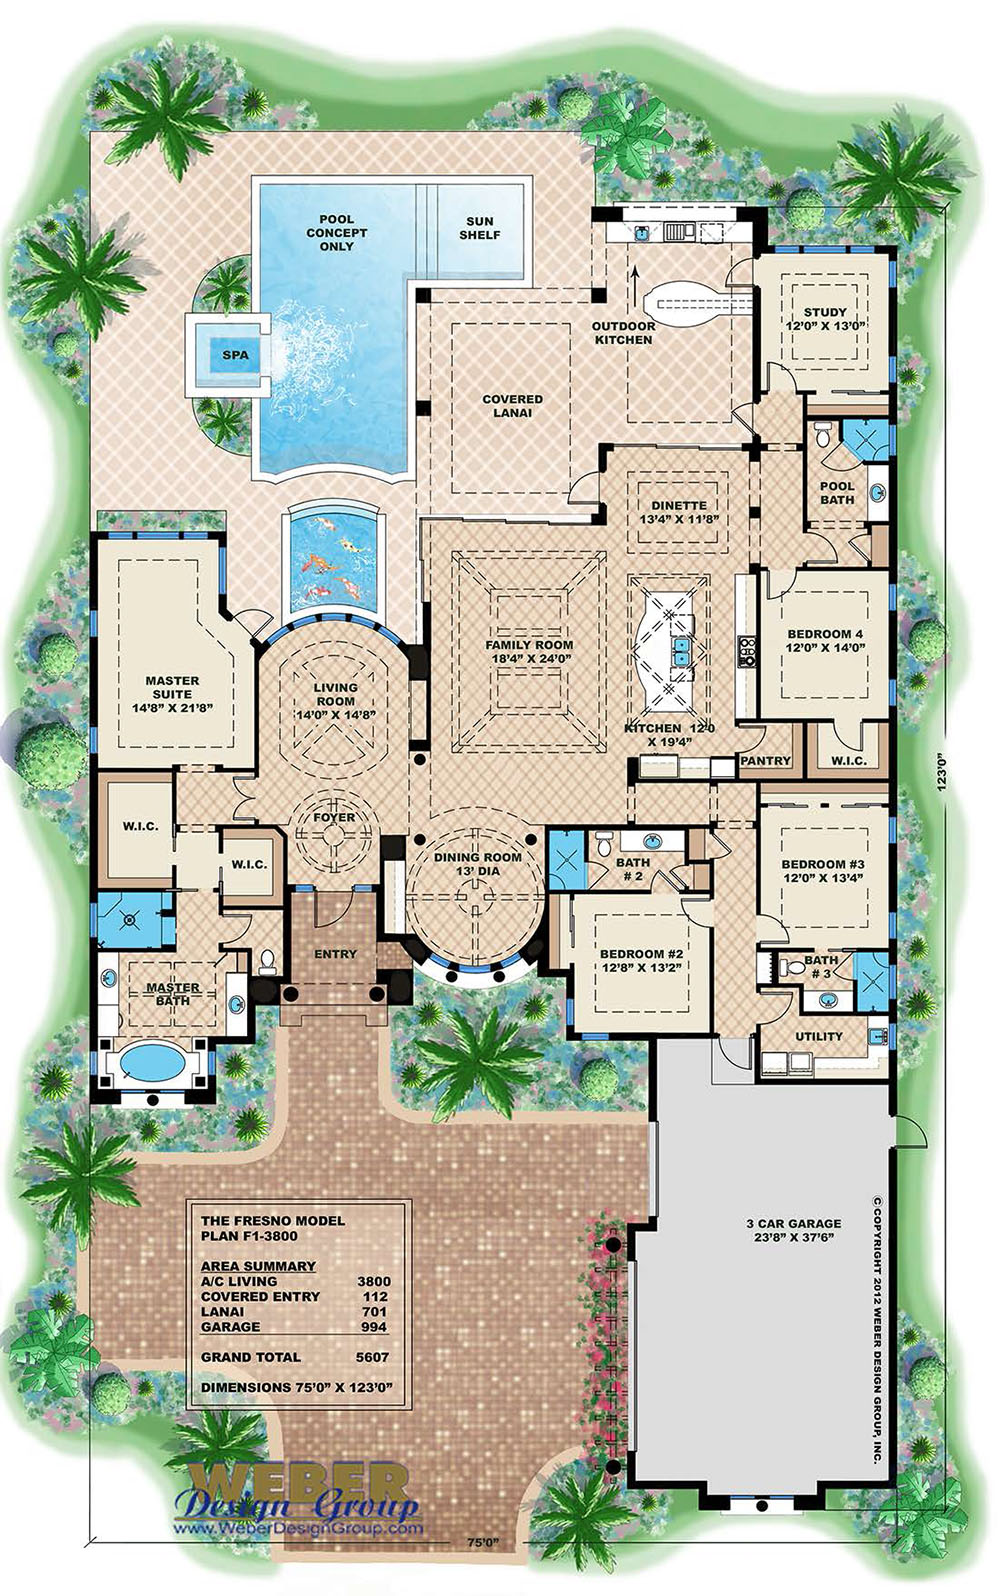 Seascape house plan weber design group for Weber design